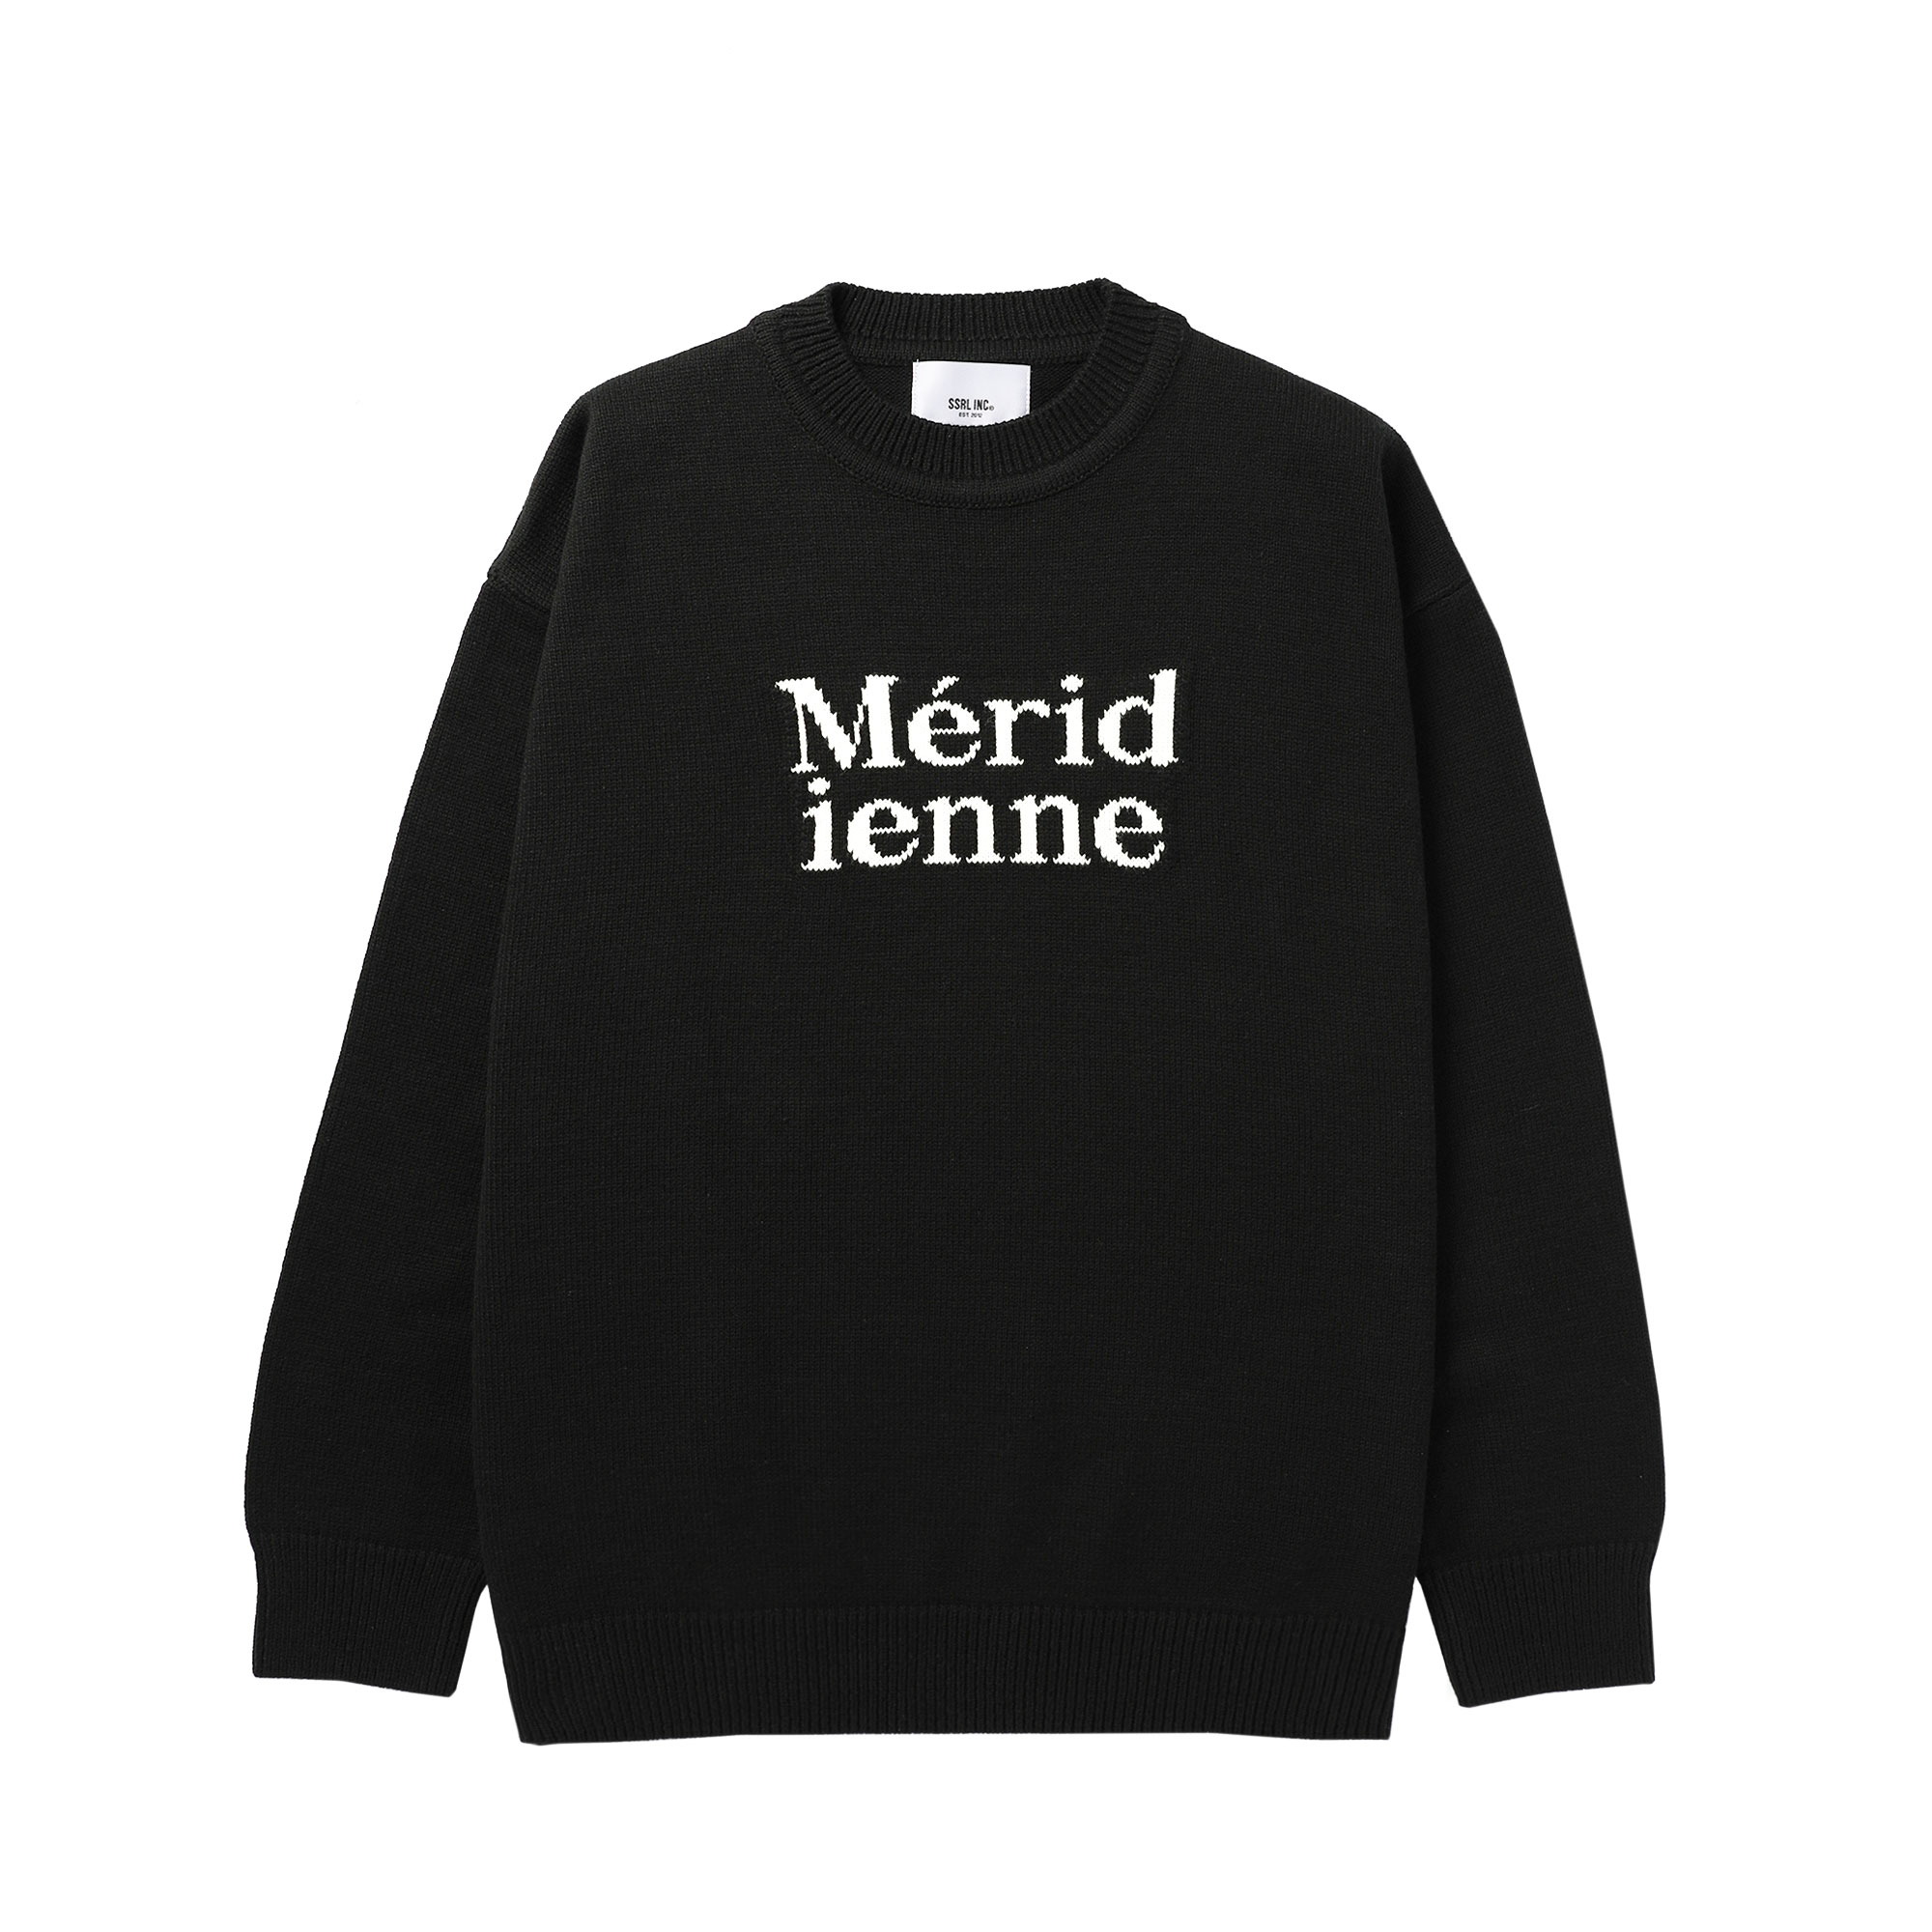 meridienne crew neck knit / black